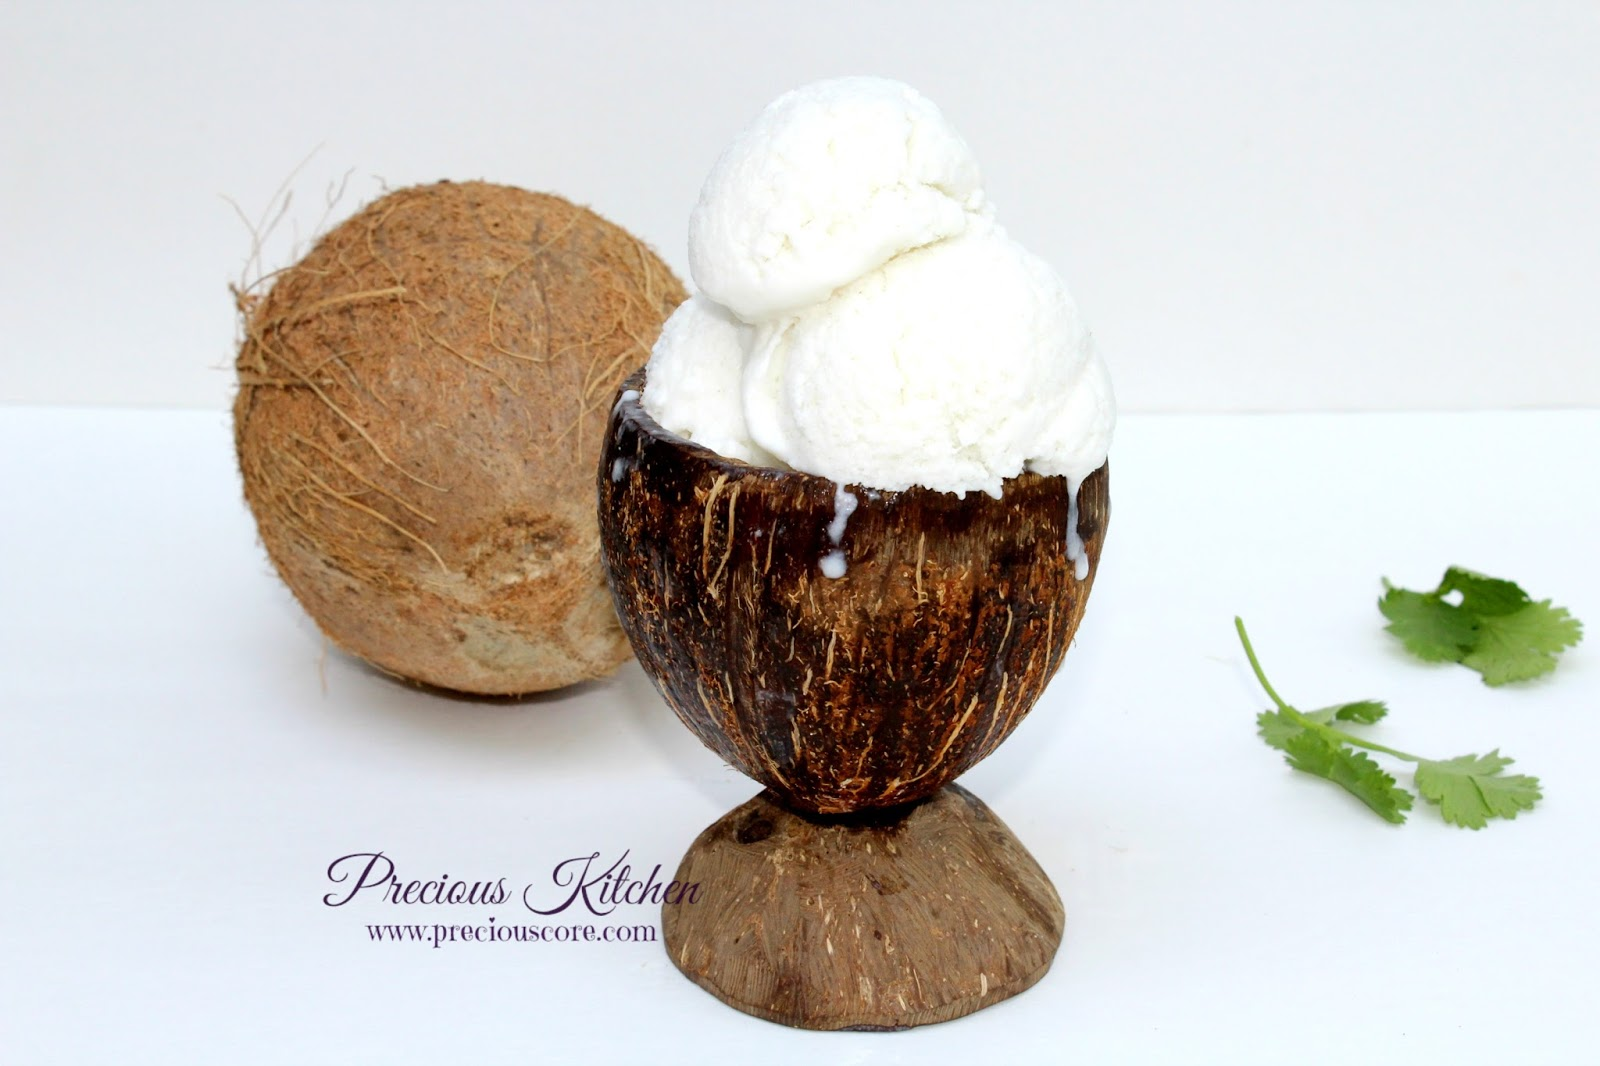 4-INGREDIENT COCONUT ICE CREAM